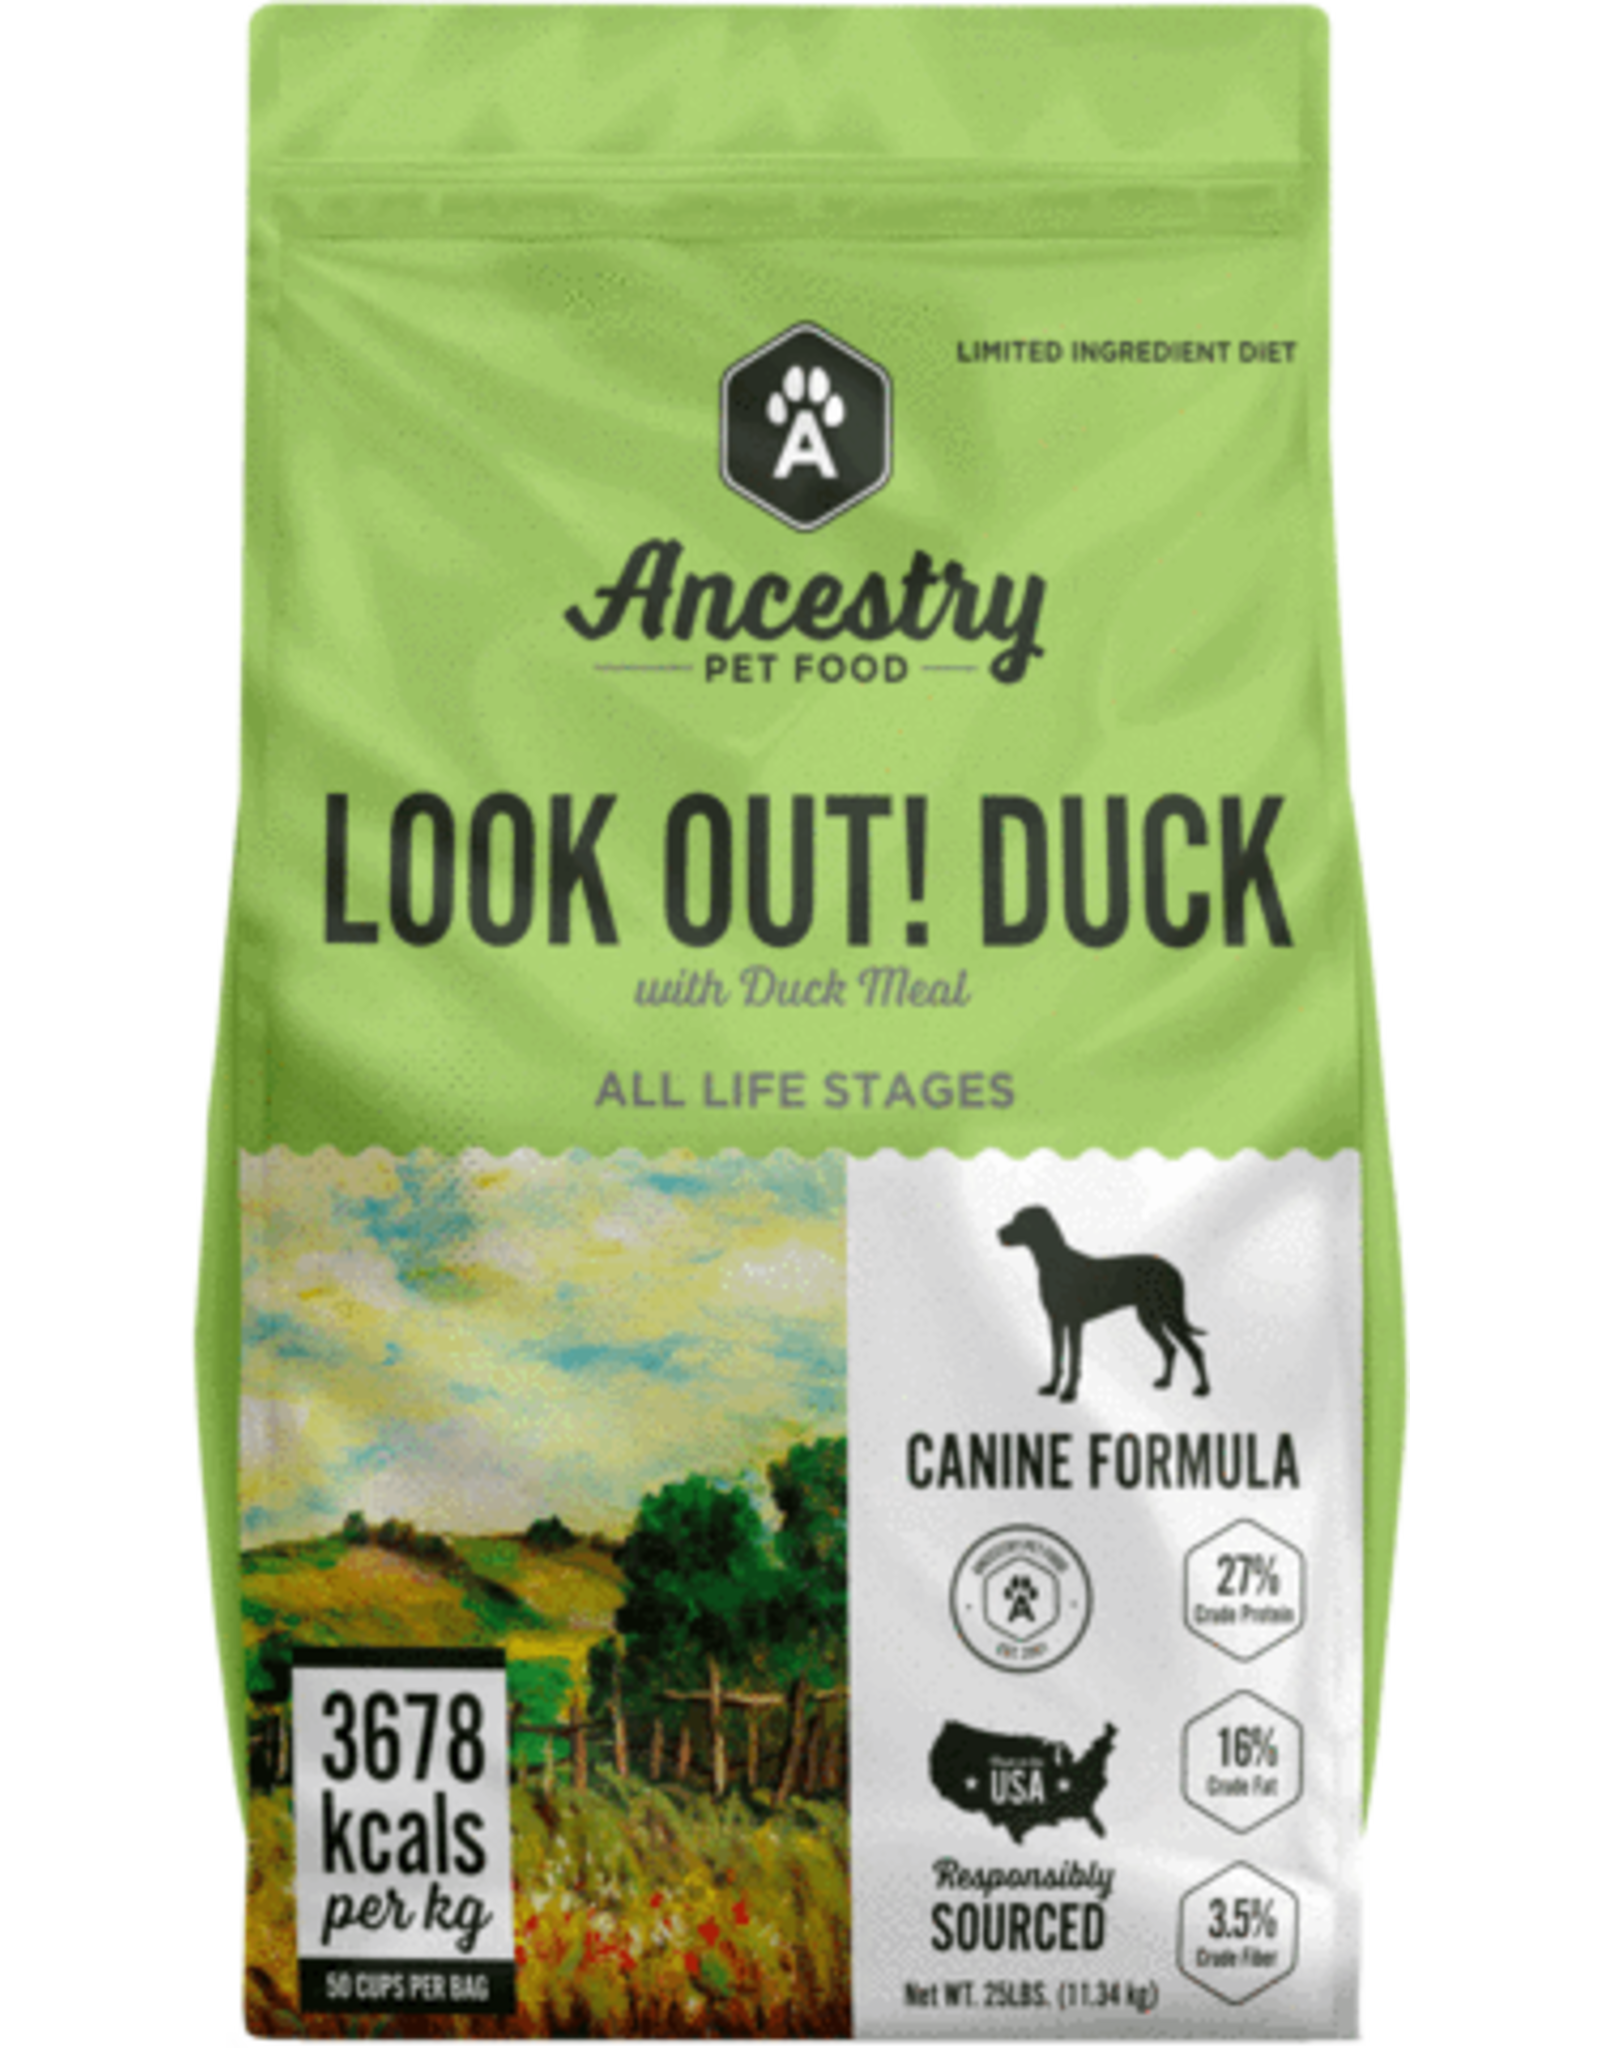 Ancestry Ancestry Dry Dog Food Look Out! Duck with Duck Meal Limited Ingredient Diet Grain Free